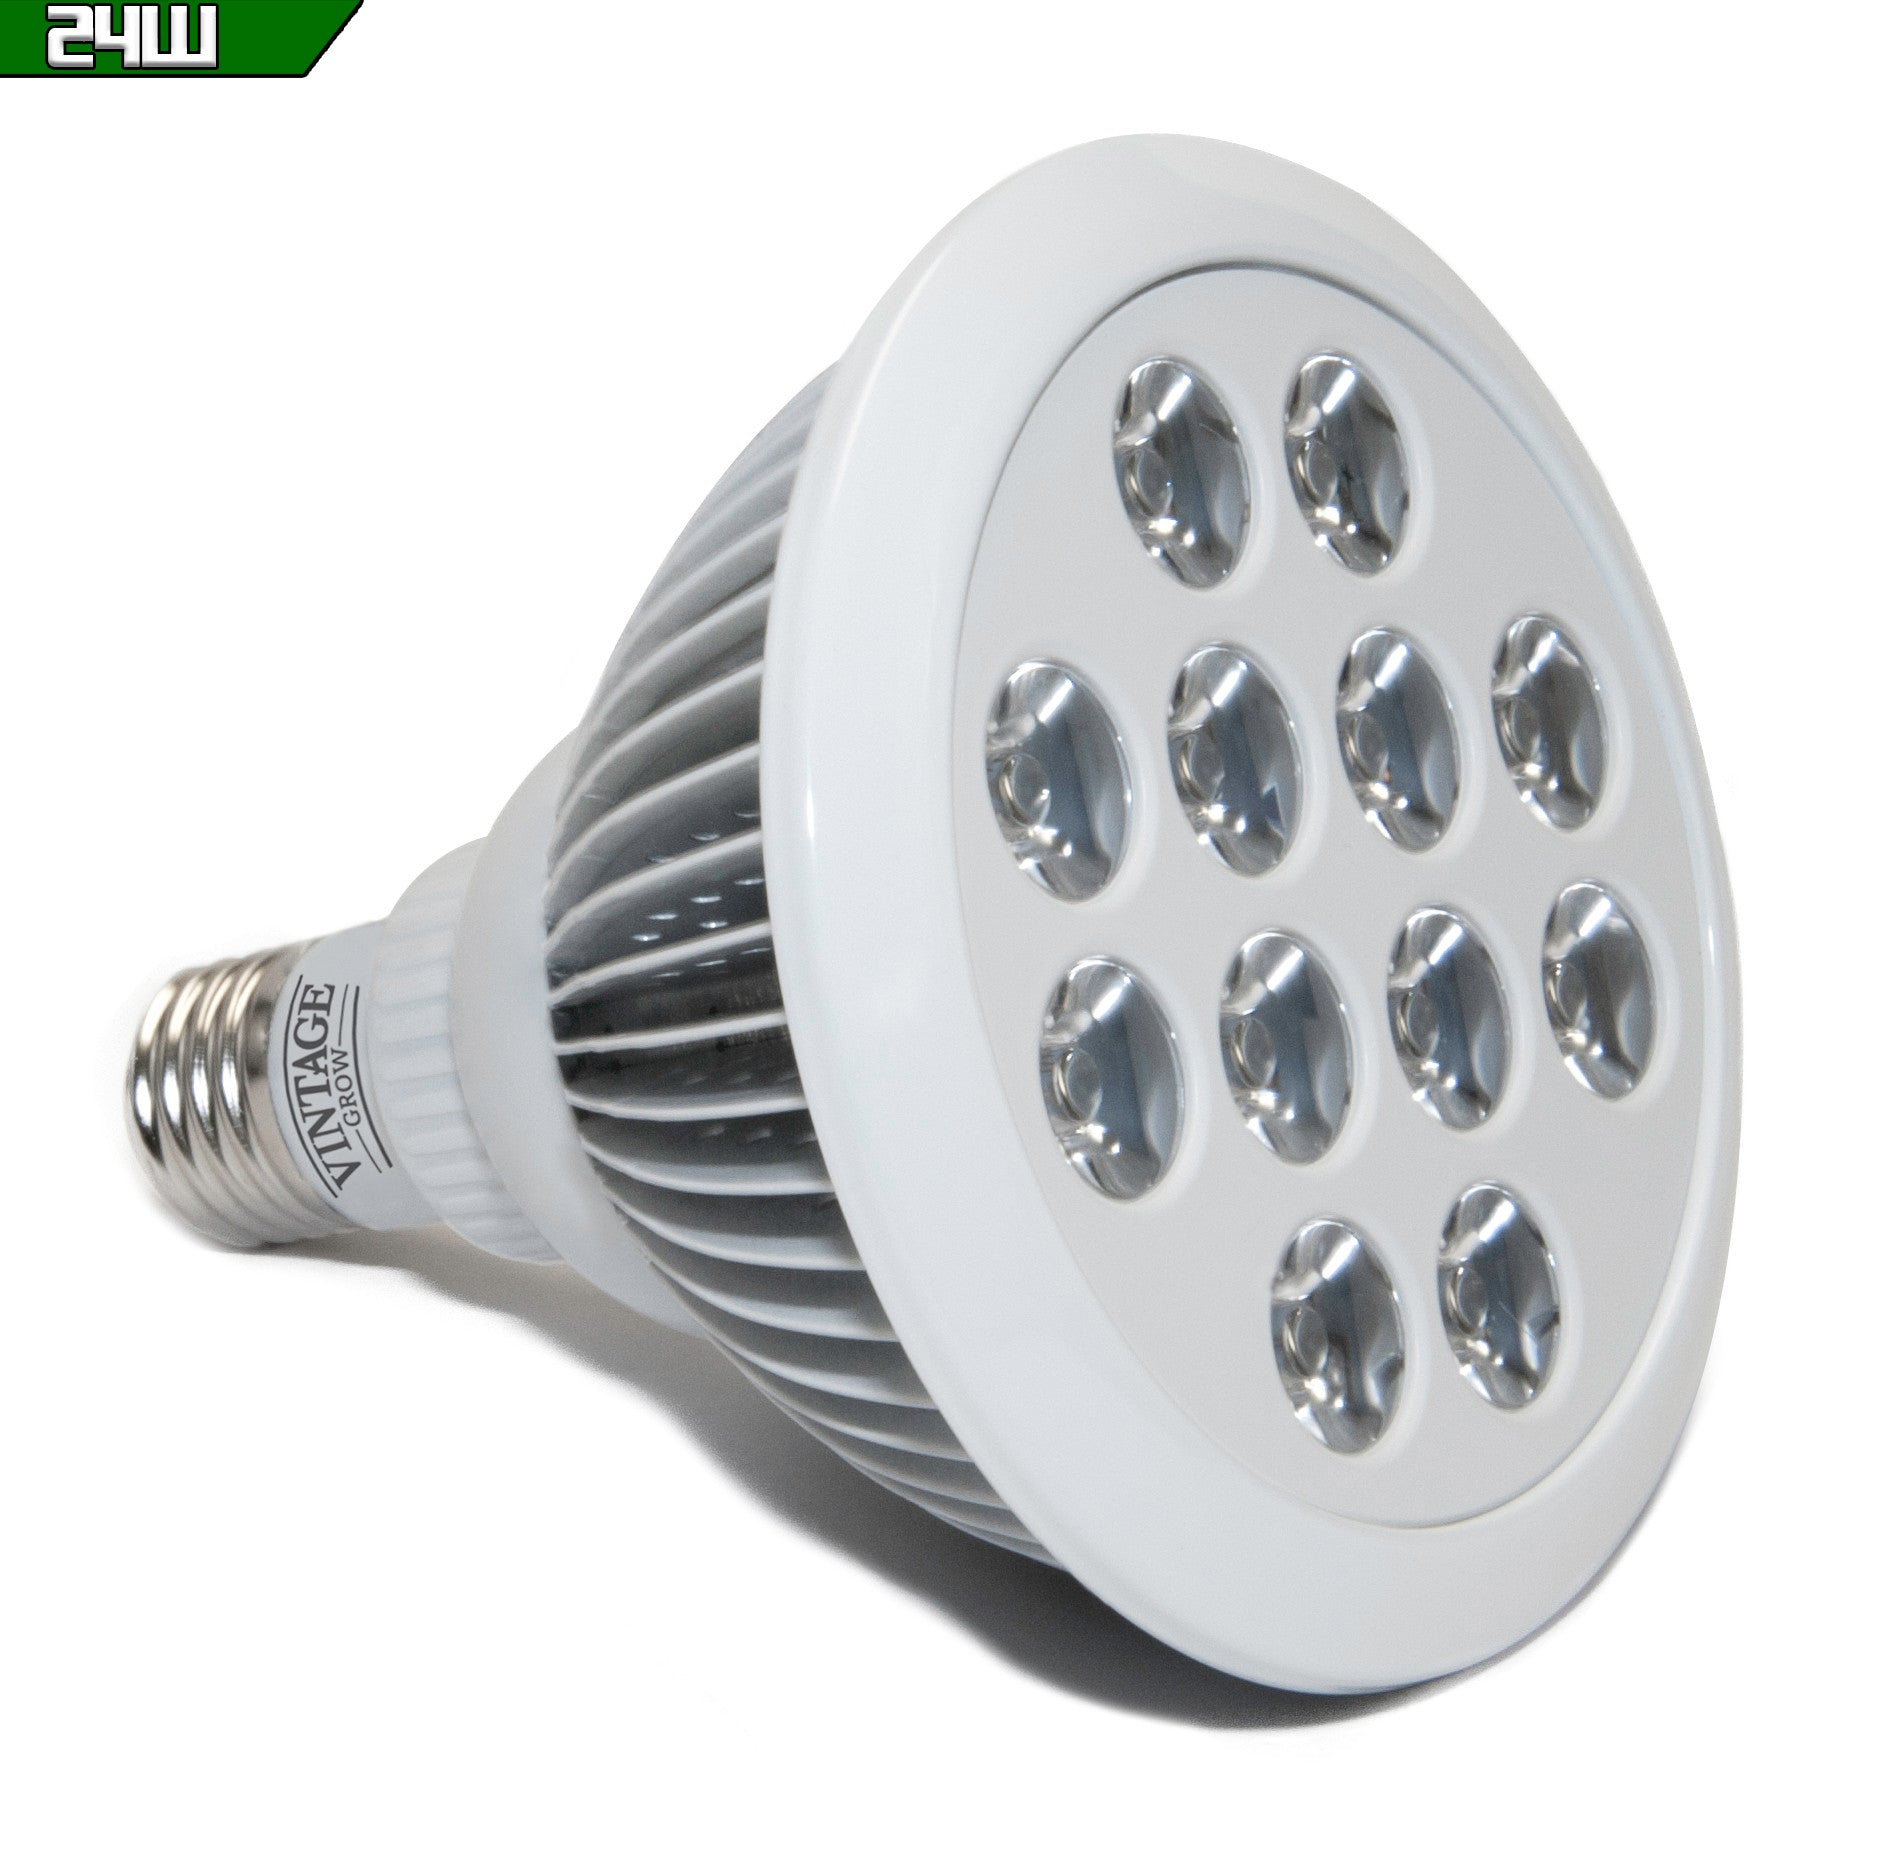 led bulb interior best lighting canada serene com garden light guide indoor plant hytech lights marvellous vegetable ultimate weed aquarium for lamps lamp grow to plants